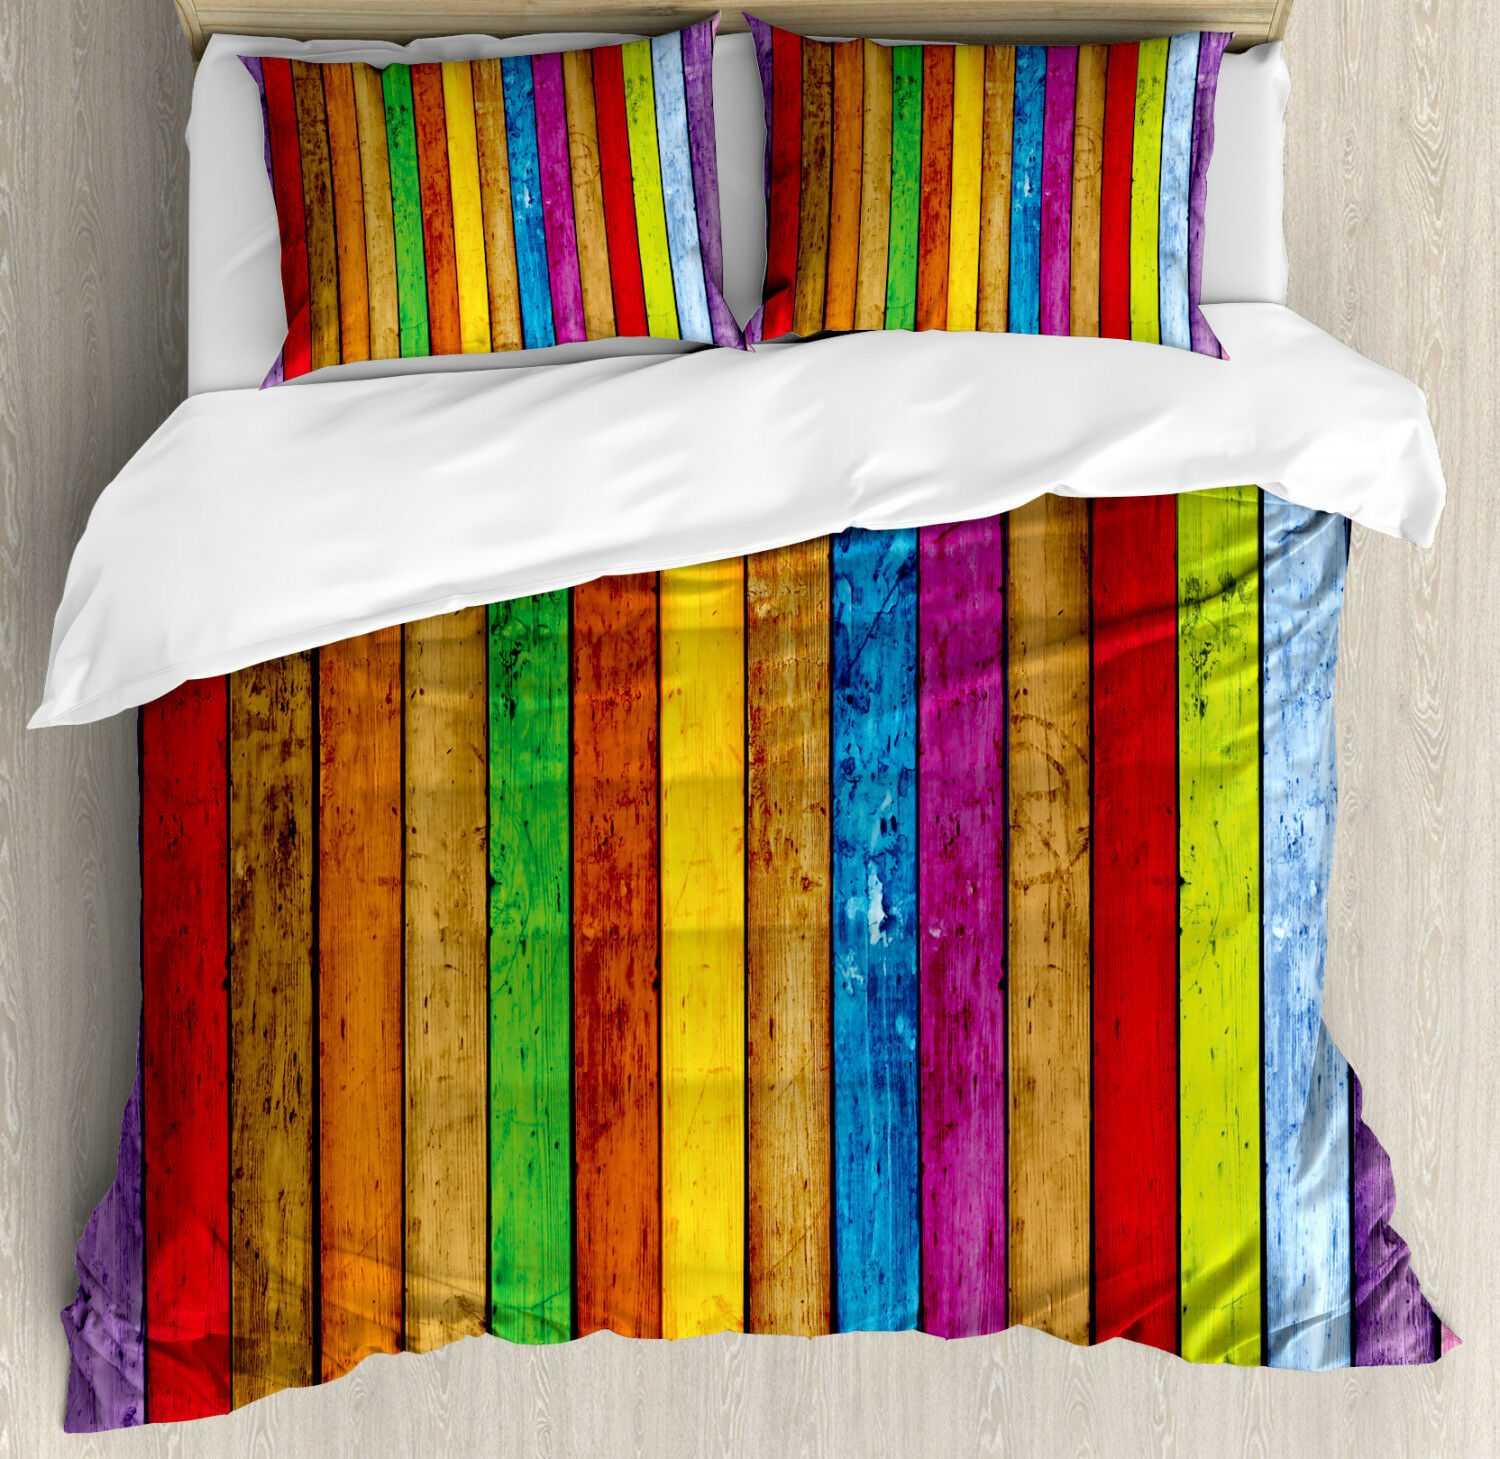 Rainbow Duvet Cover Set with Pillow Shams Vibrant Wooden Artistic Print